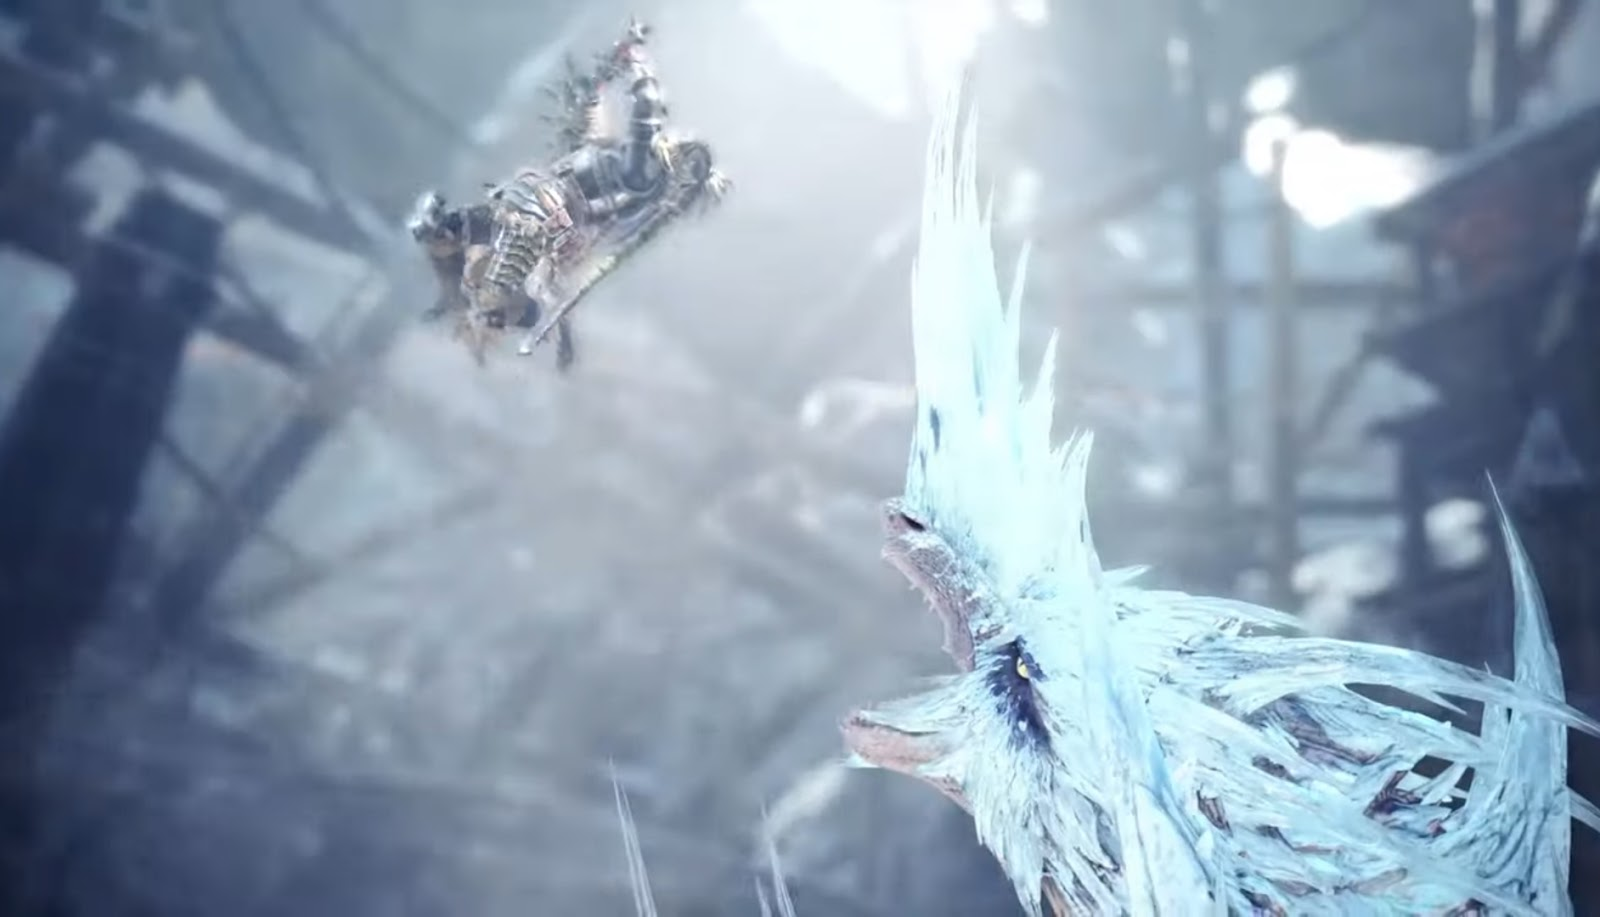 Kabar game terbaru, tanggal rilis game monster hunter world iceborne, harga game monster hunter world iceborne, monster hunter world iceborne review, monster hunter world iceborne akan rilis untuk playstation 4 xbox one dan pc, info game terbaru, berita game terbaru,